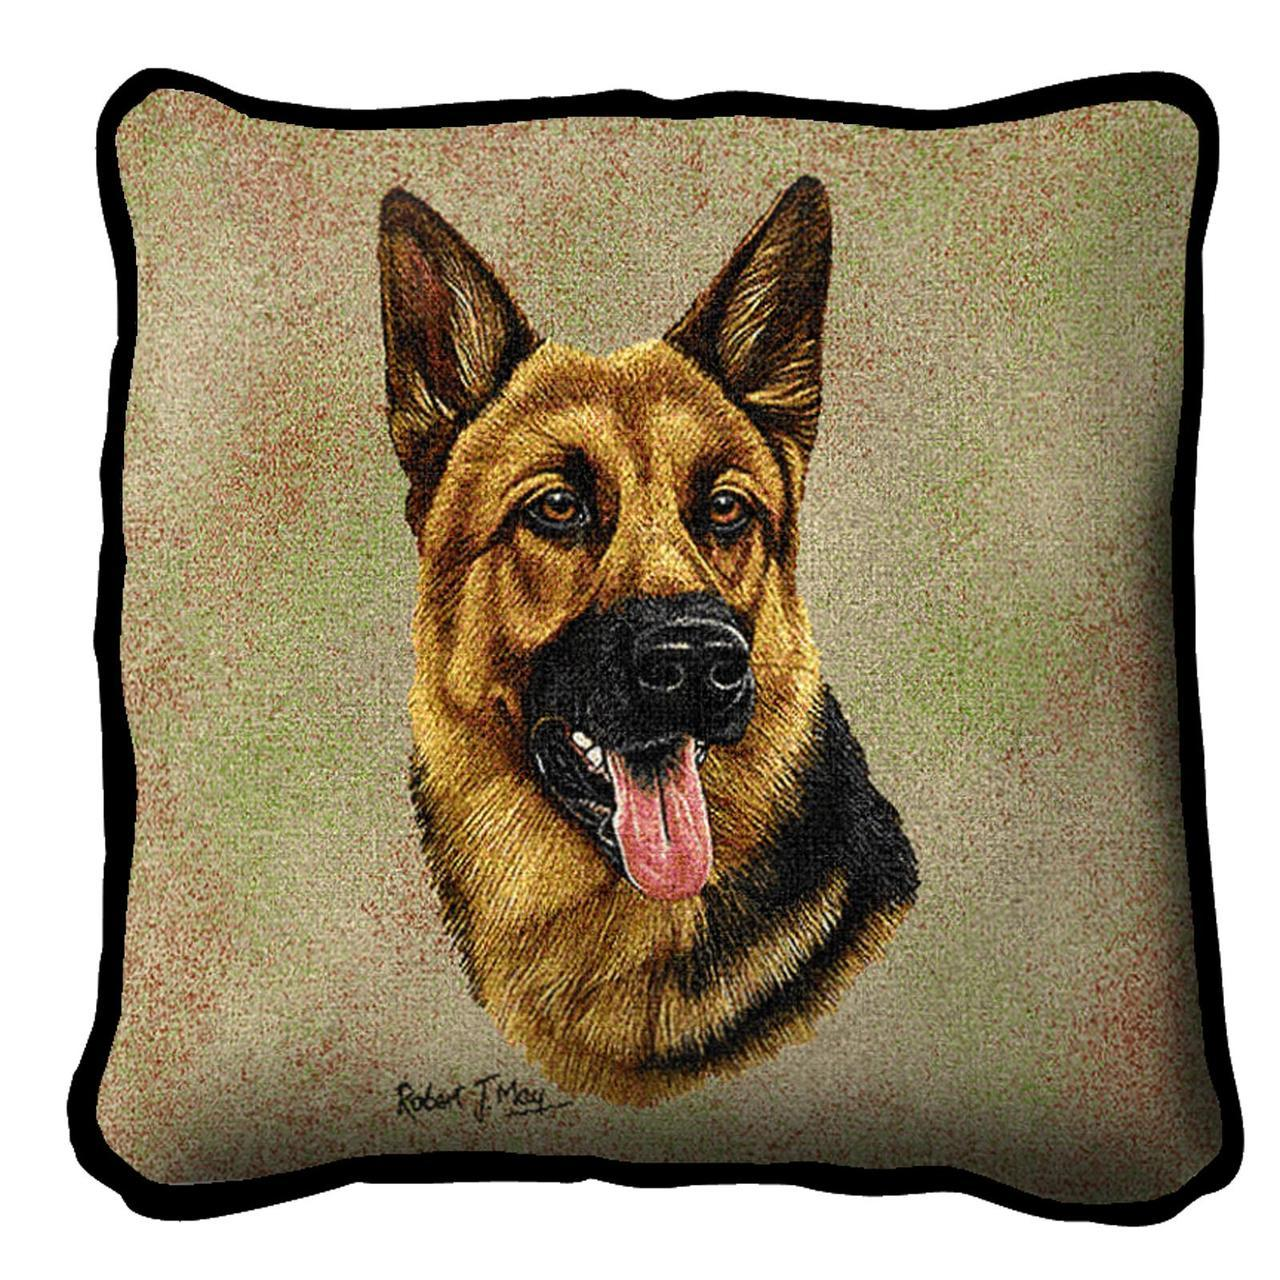 Throw Pillow-17 x 17-Animal Lover-German Shepherd